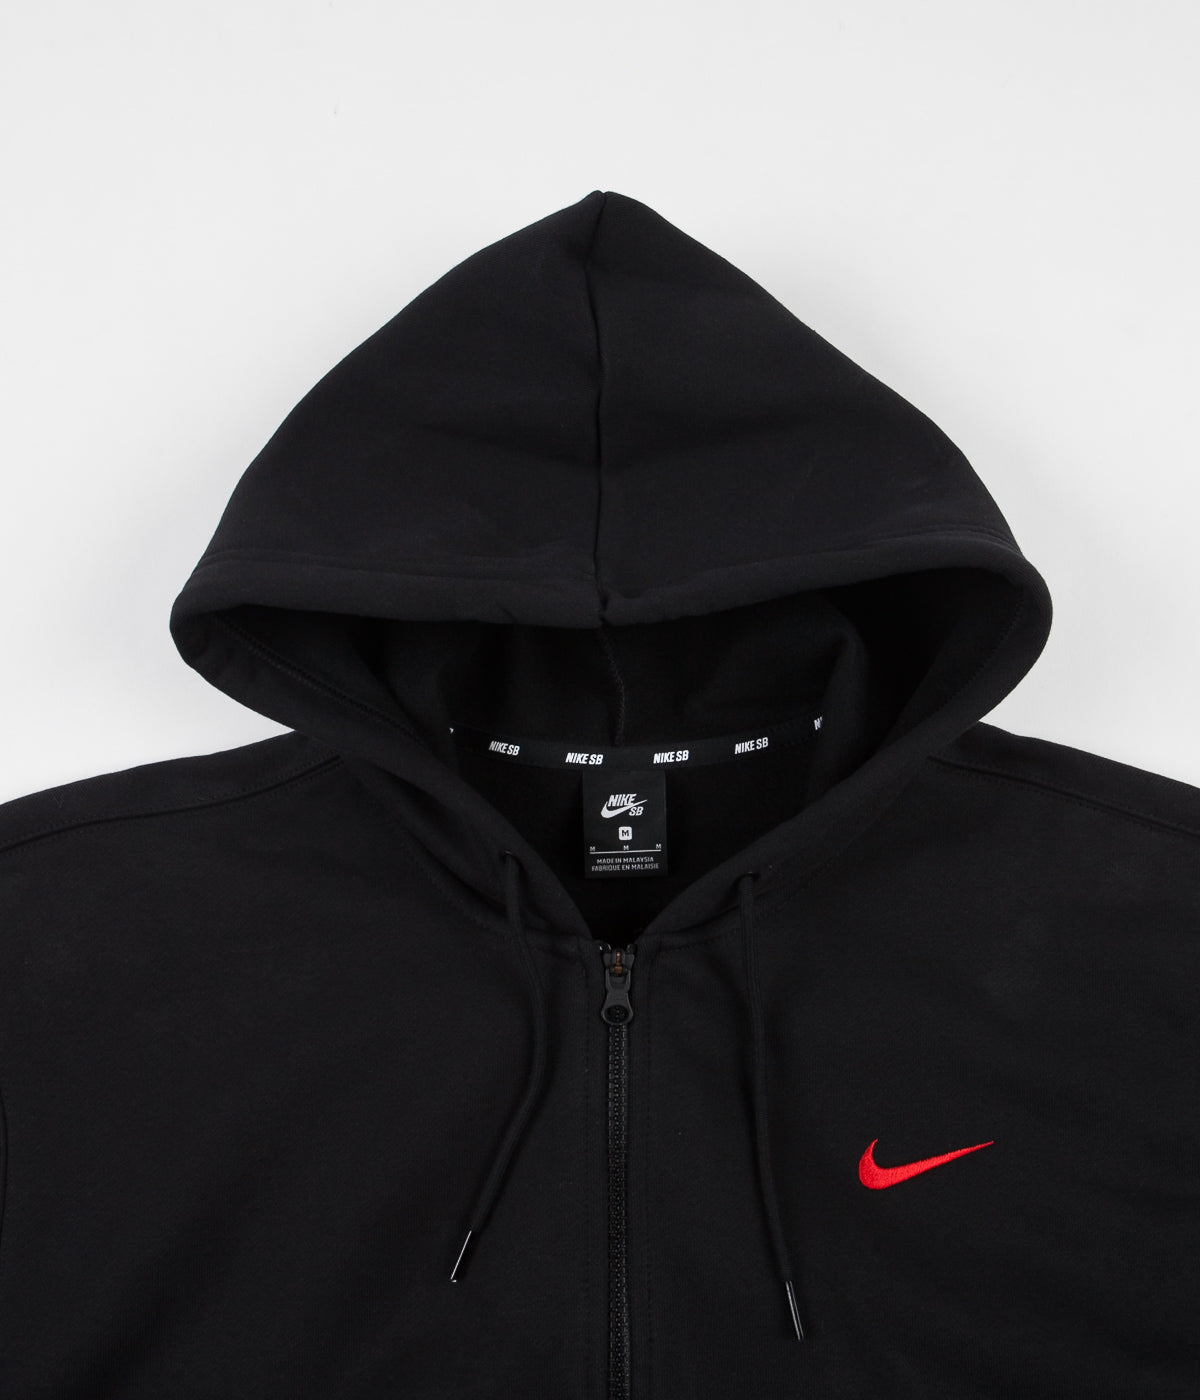 Nike SB Orange Label 'Oski' Hoodie - Black / University Red